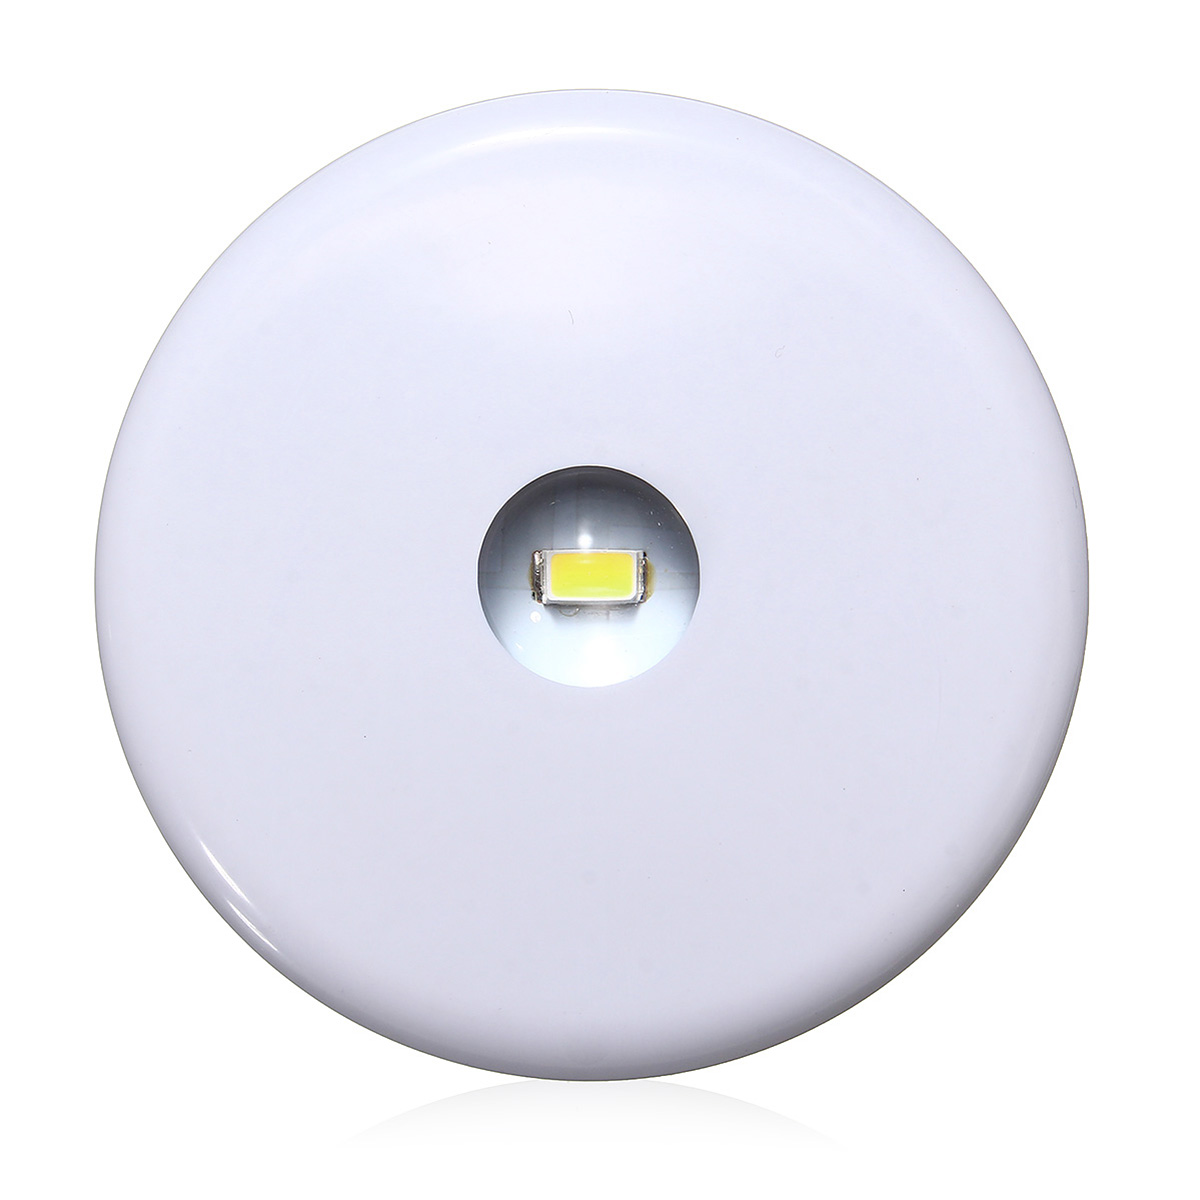 Wireless Touch Sensor LED Night Light Kitchen Under Cabinet Wardrobe Wall Lamp